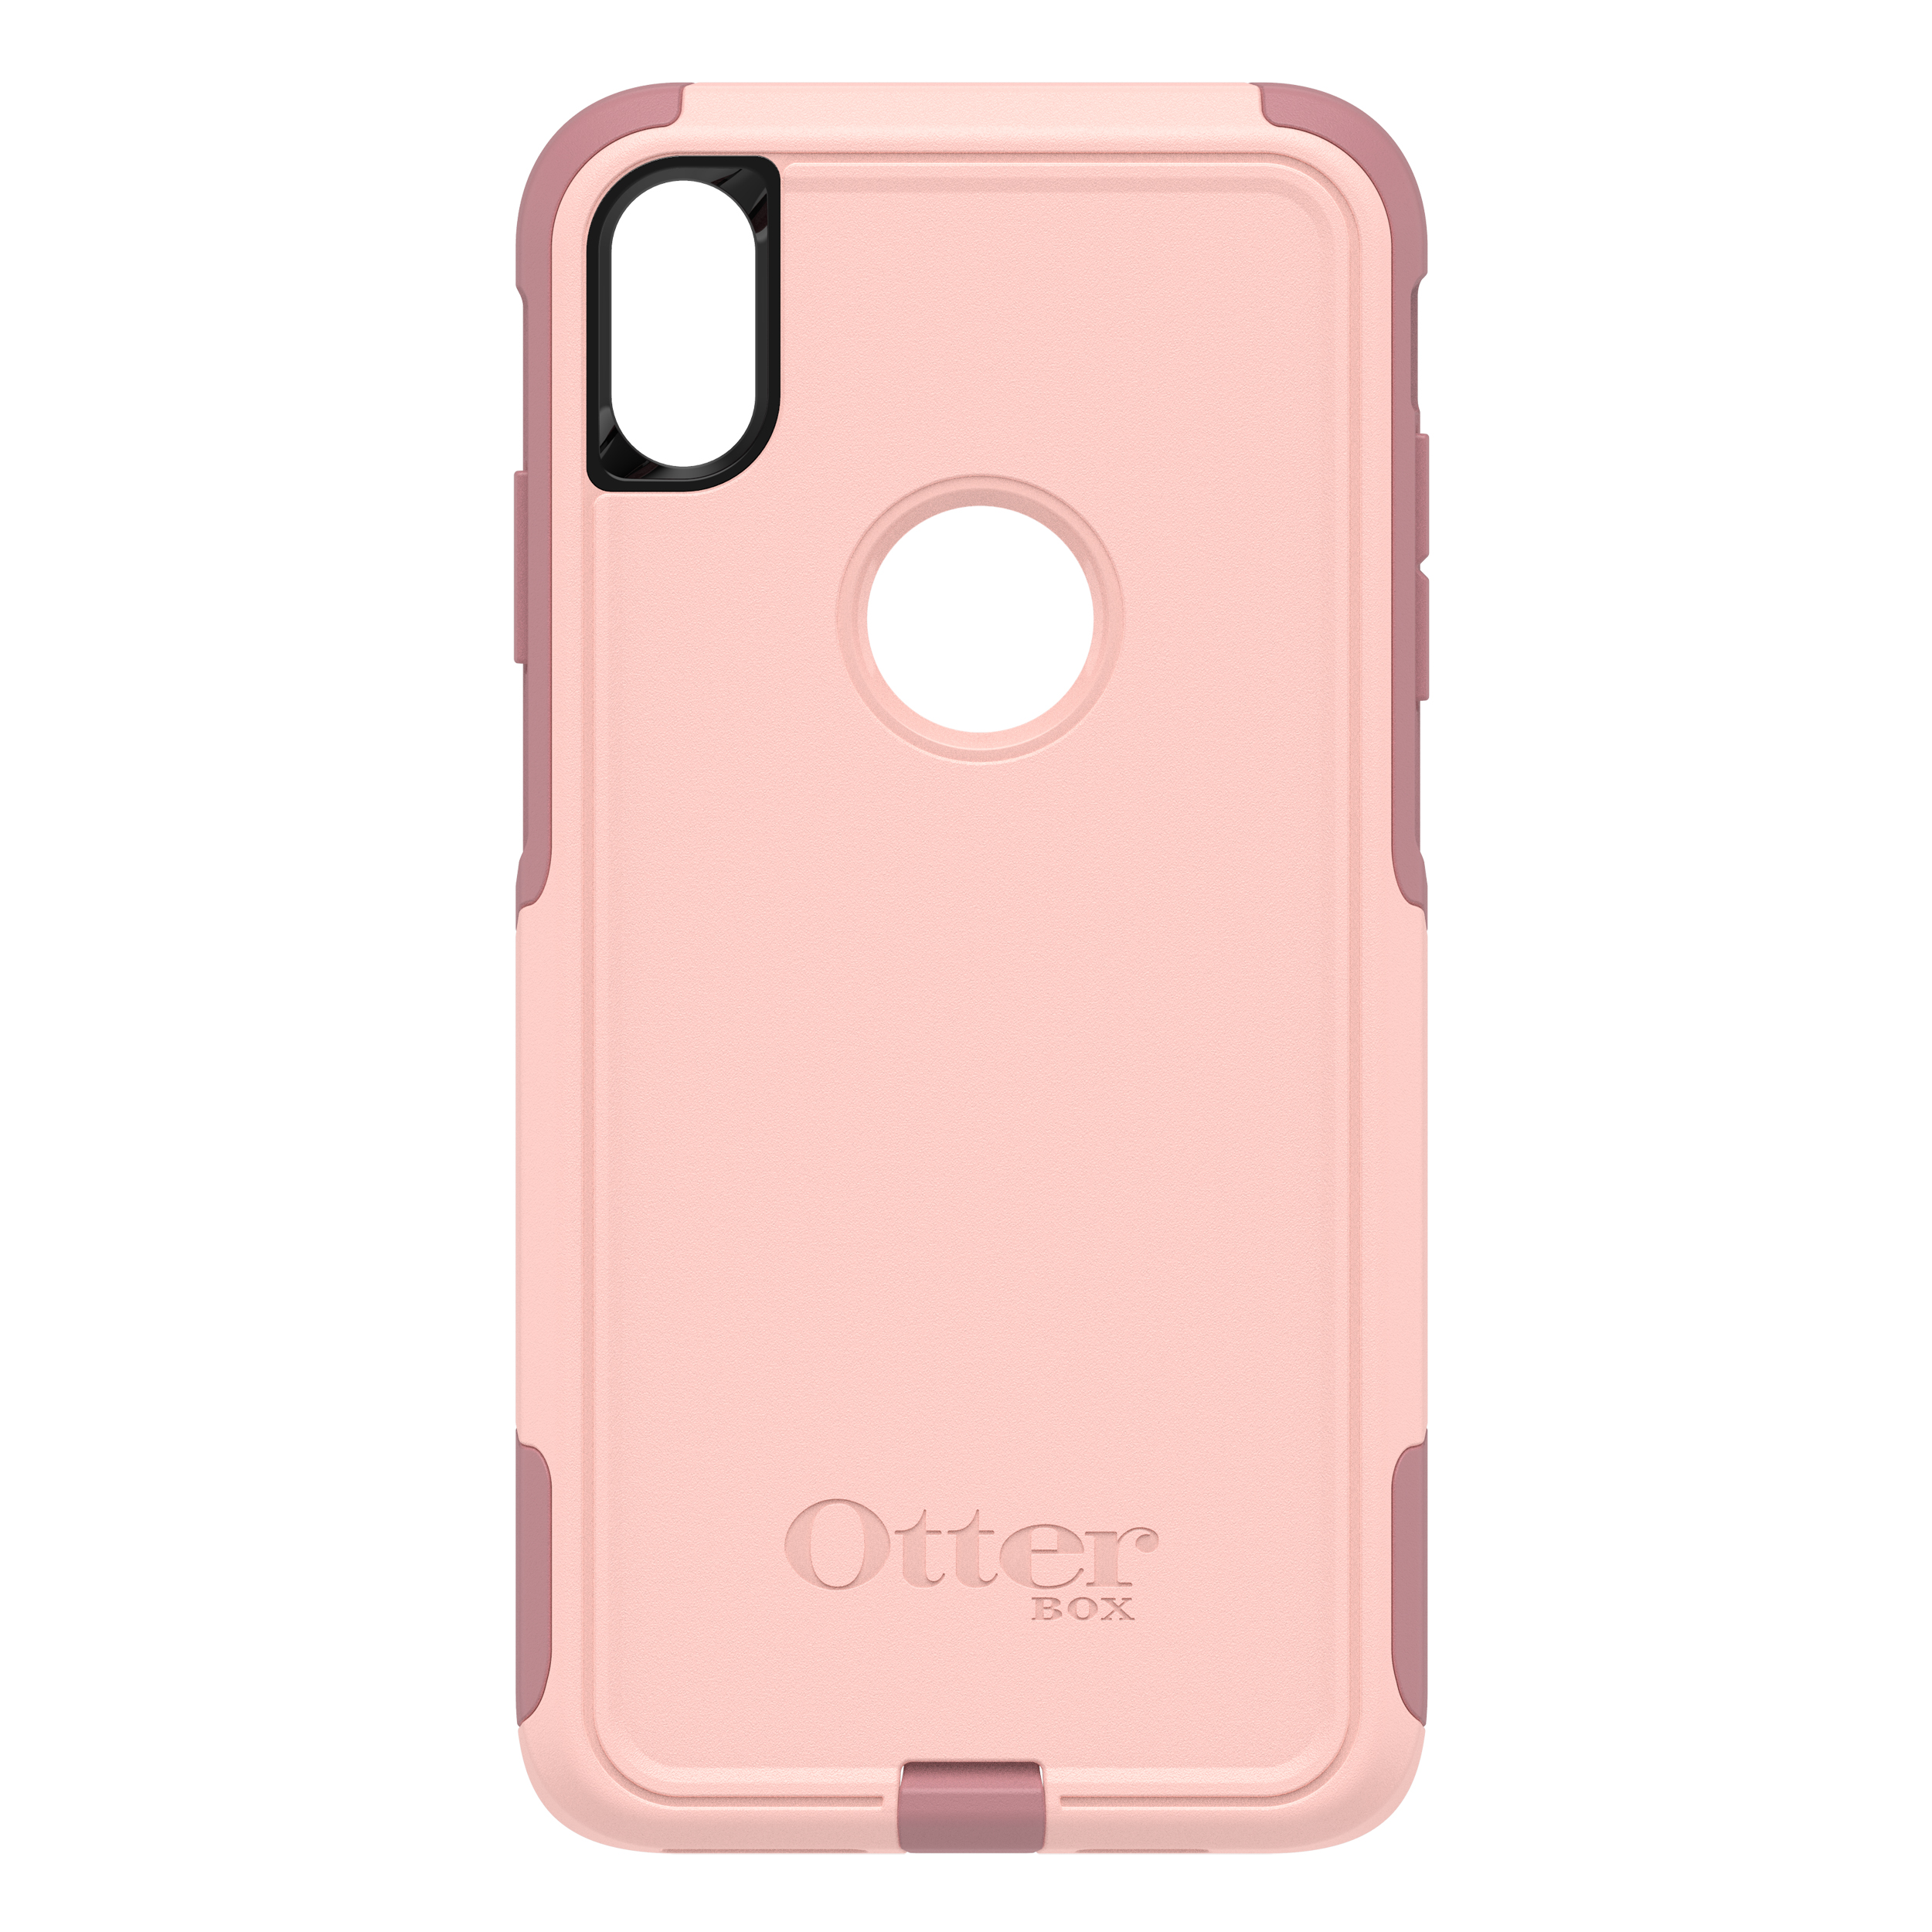 Otterbox Commuter Series Case for iPhone Xs Max, Ballet Way by OtterBox